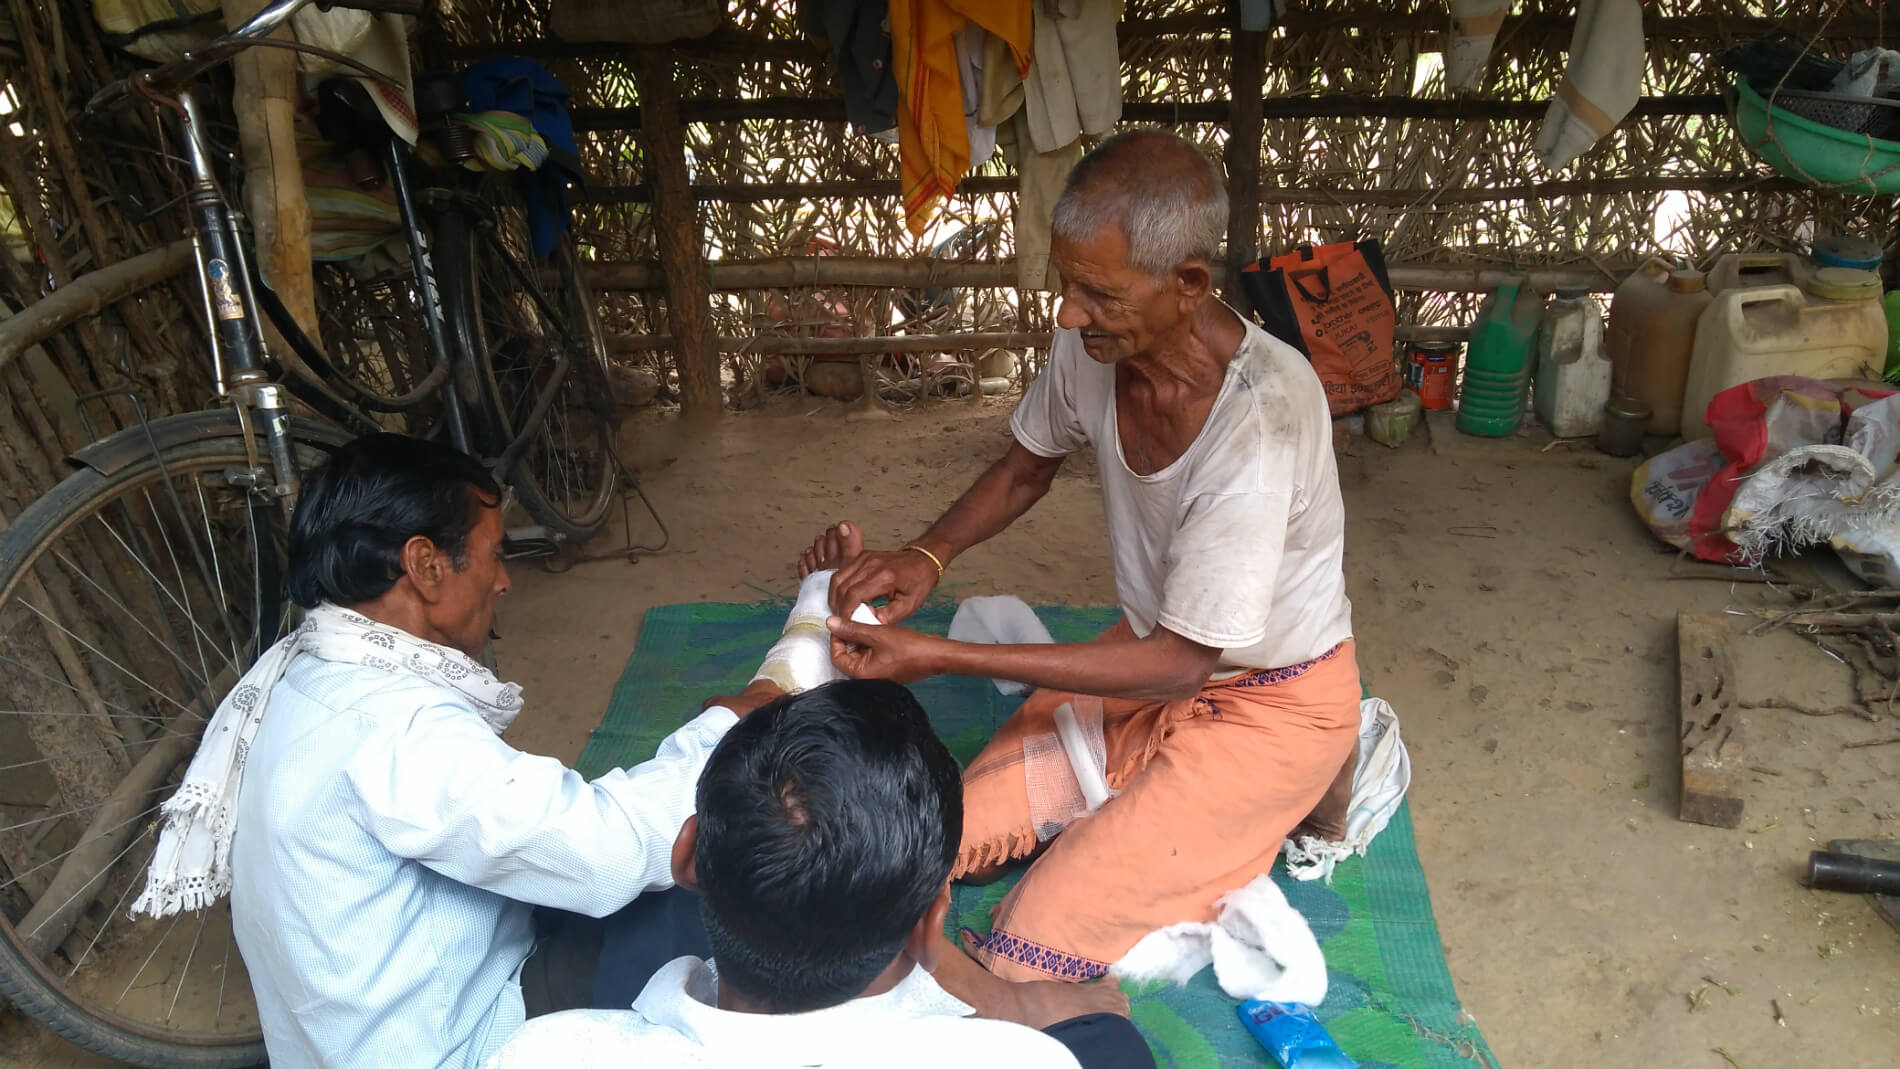 , The indigenous doctors and healers of Chhattisgarh